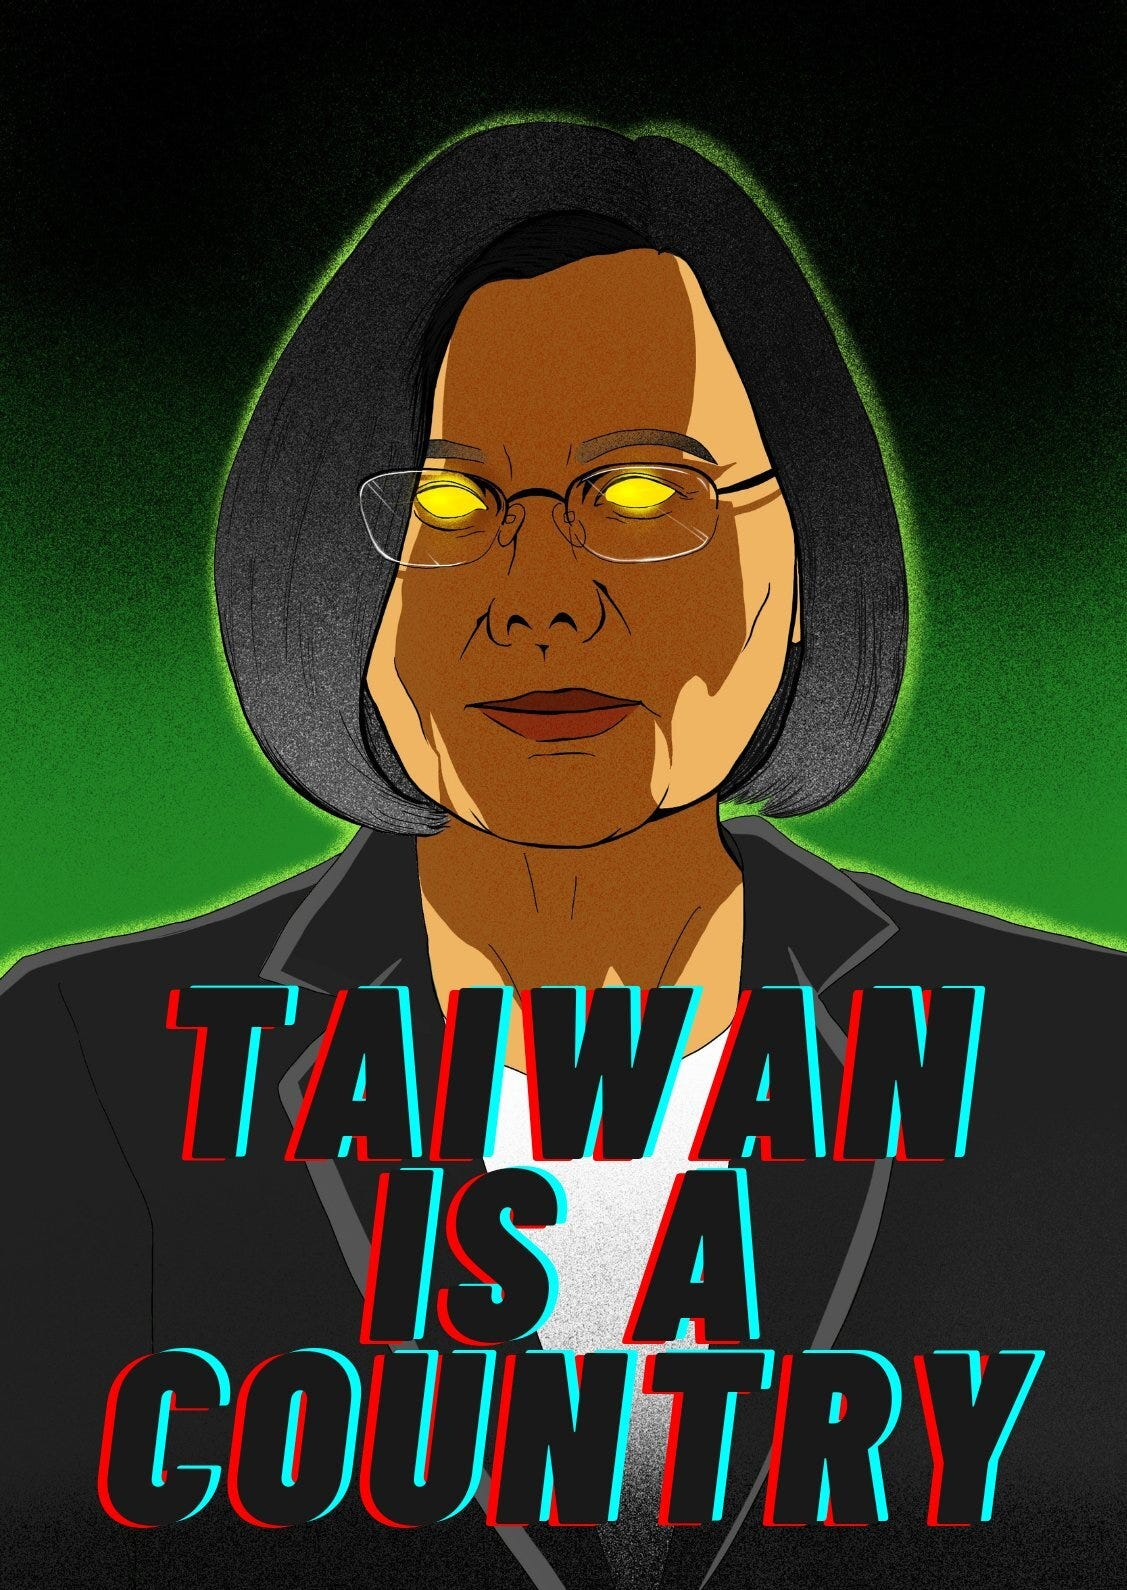 """A cartoon showing the text """"Taiwan is a country"""" superimposed on a picture of Taiwanese president Tsai Ing-wen with glowing eyes."""